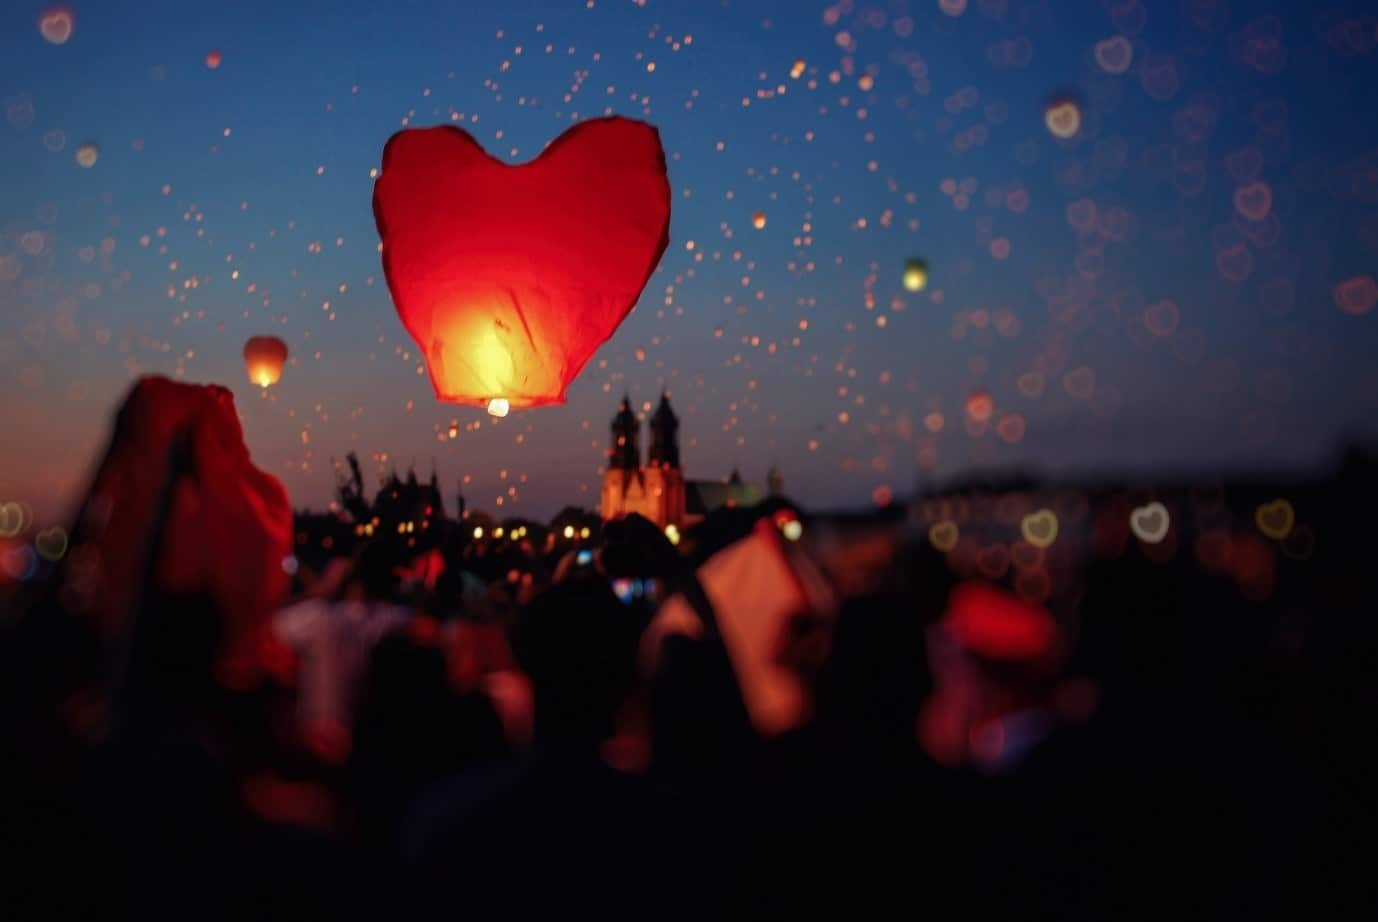 Heart Balloons at Festival - Valentines